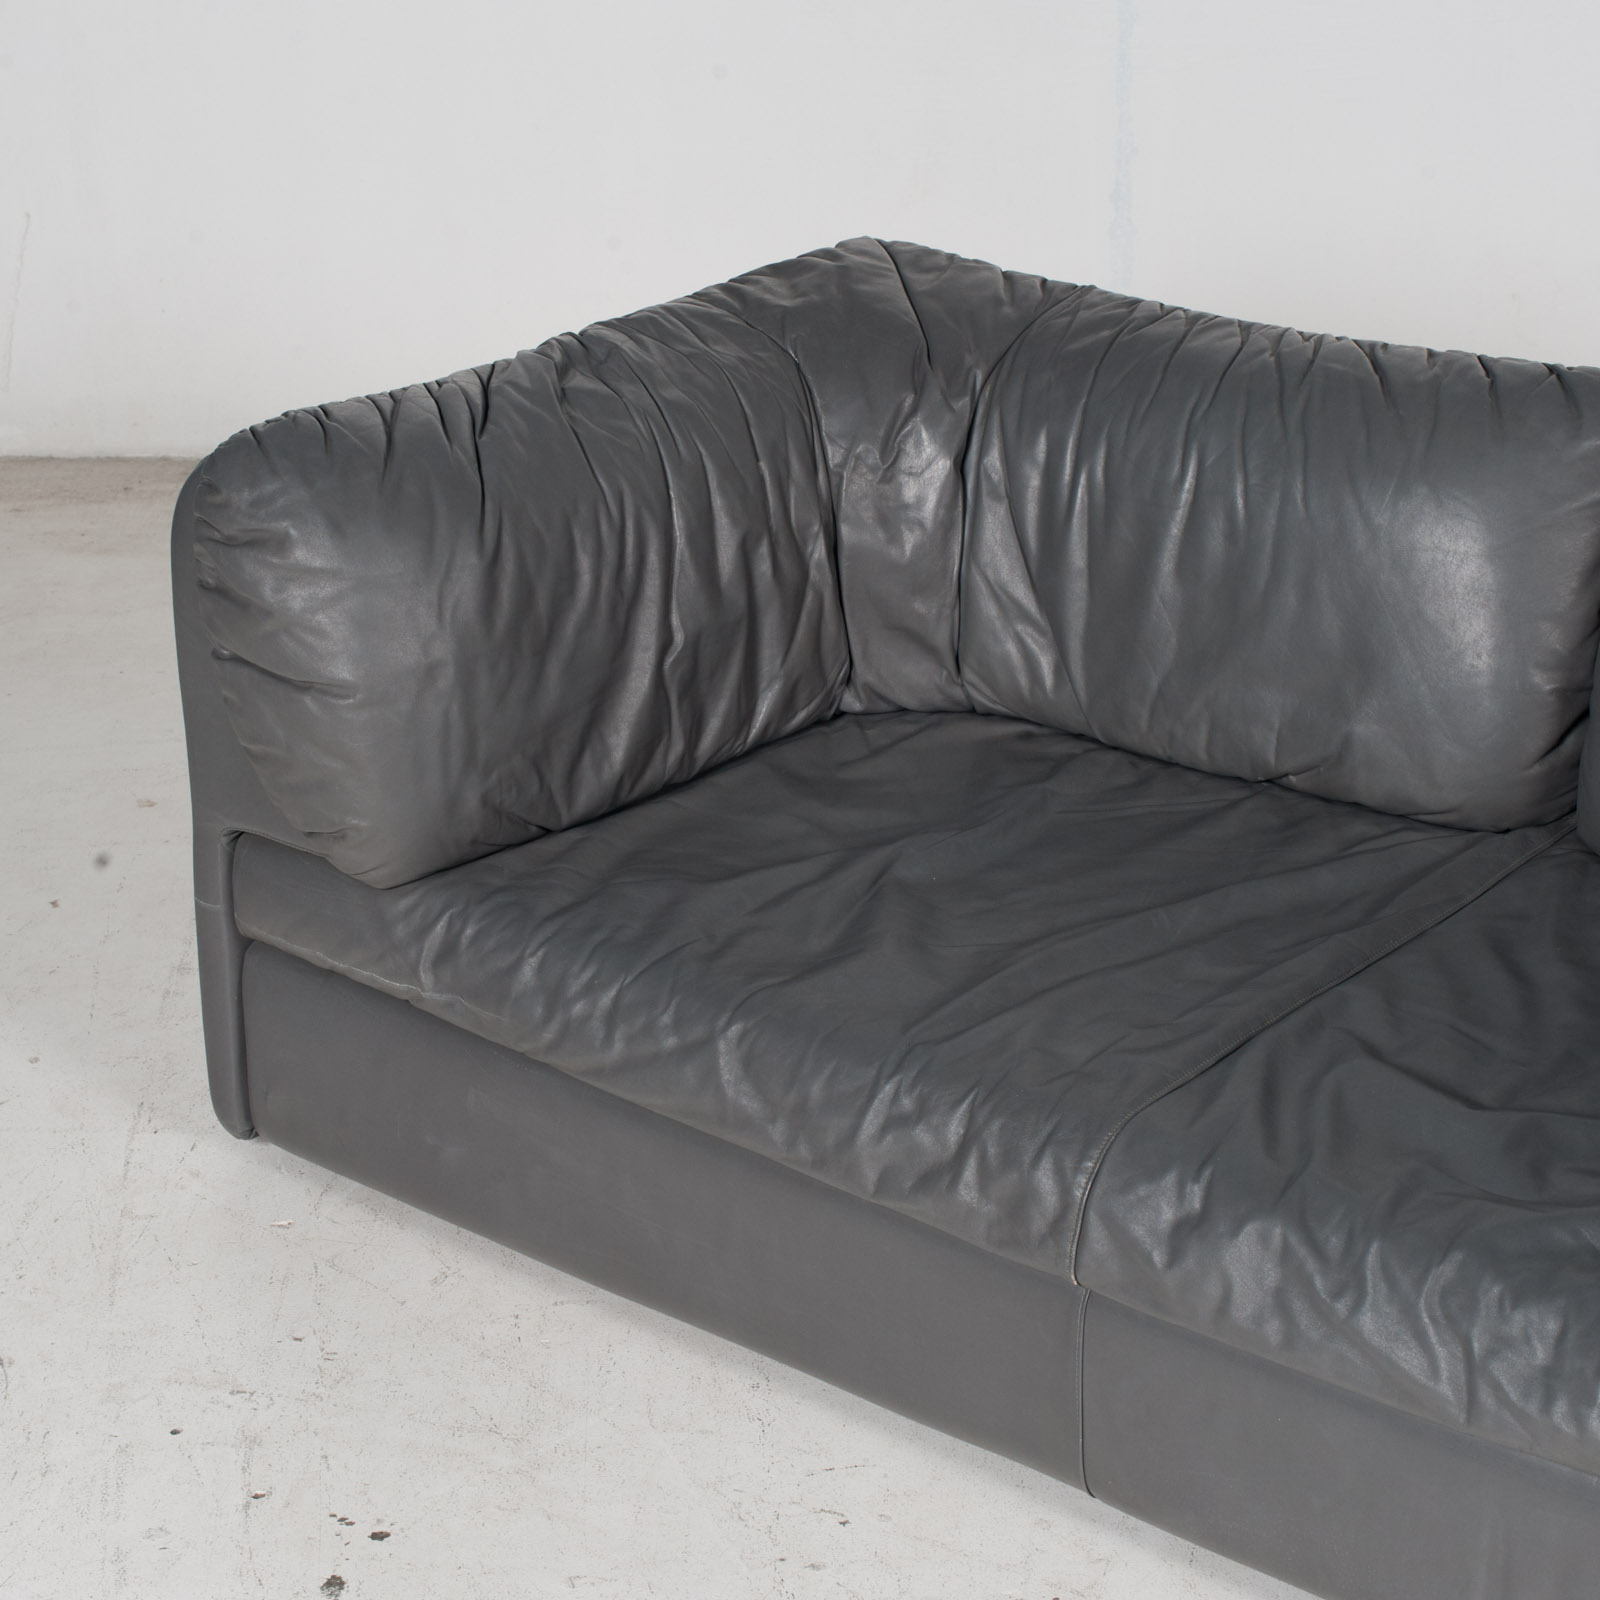 Model Pacific 2.5 Seat Sofa By Cini Boeri For Arflex In Grey Leather, 1980s, Italy 5